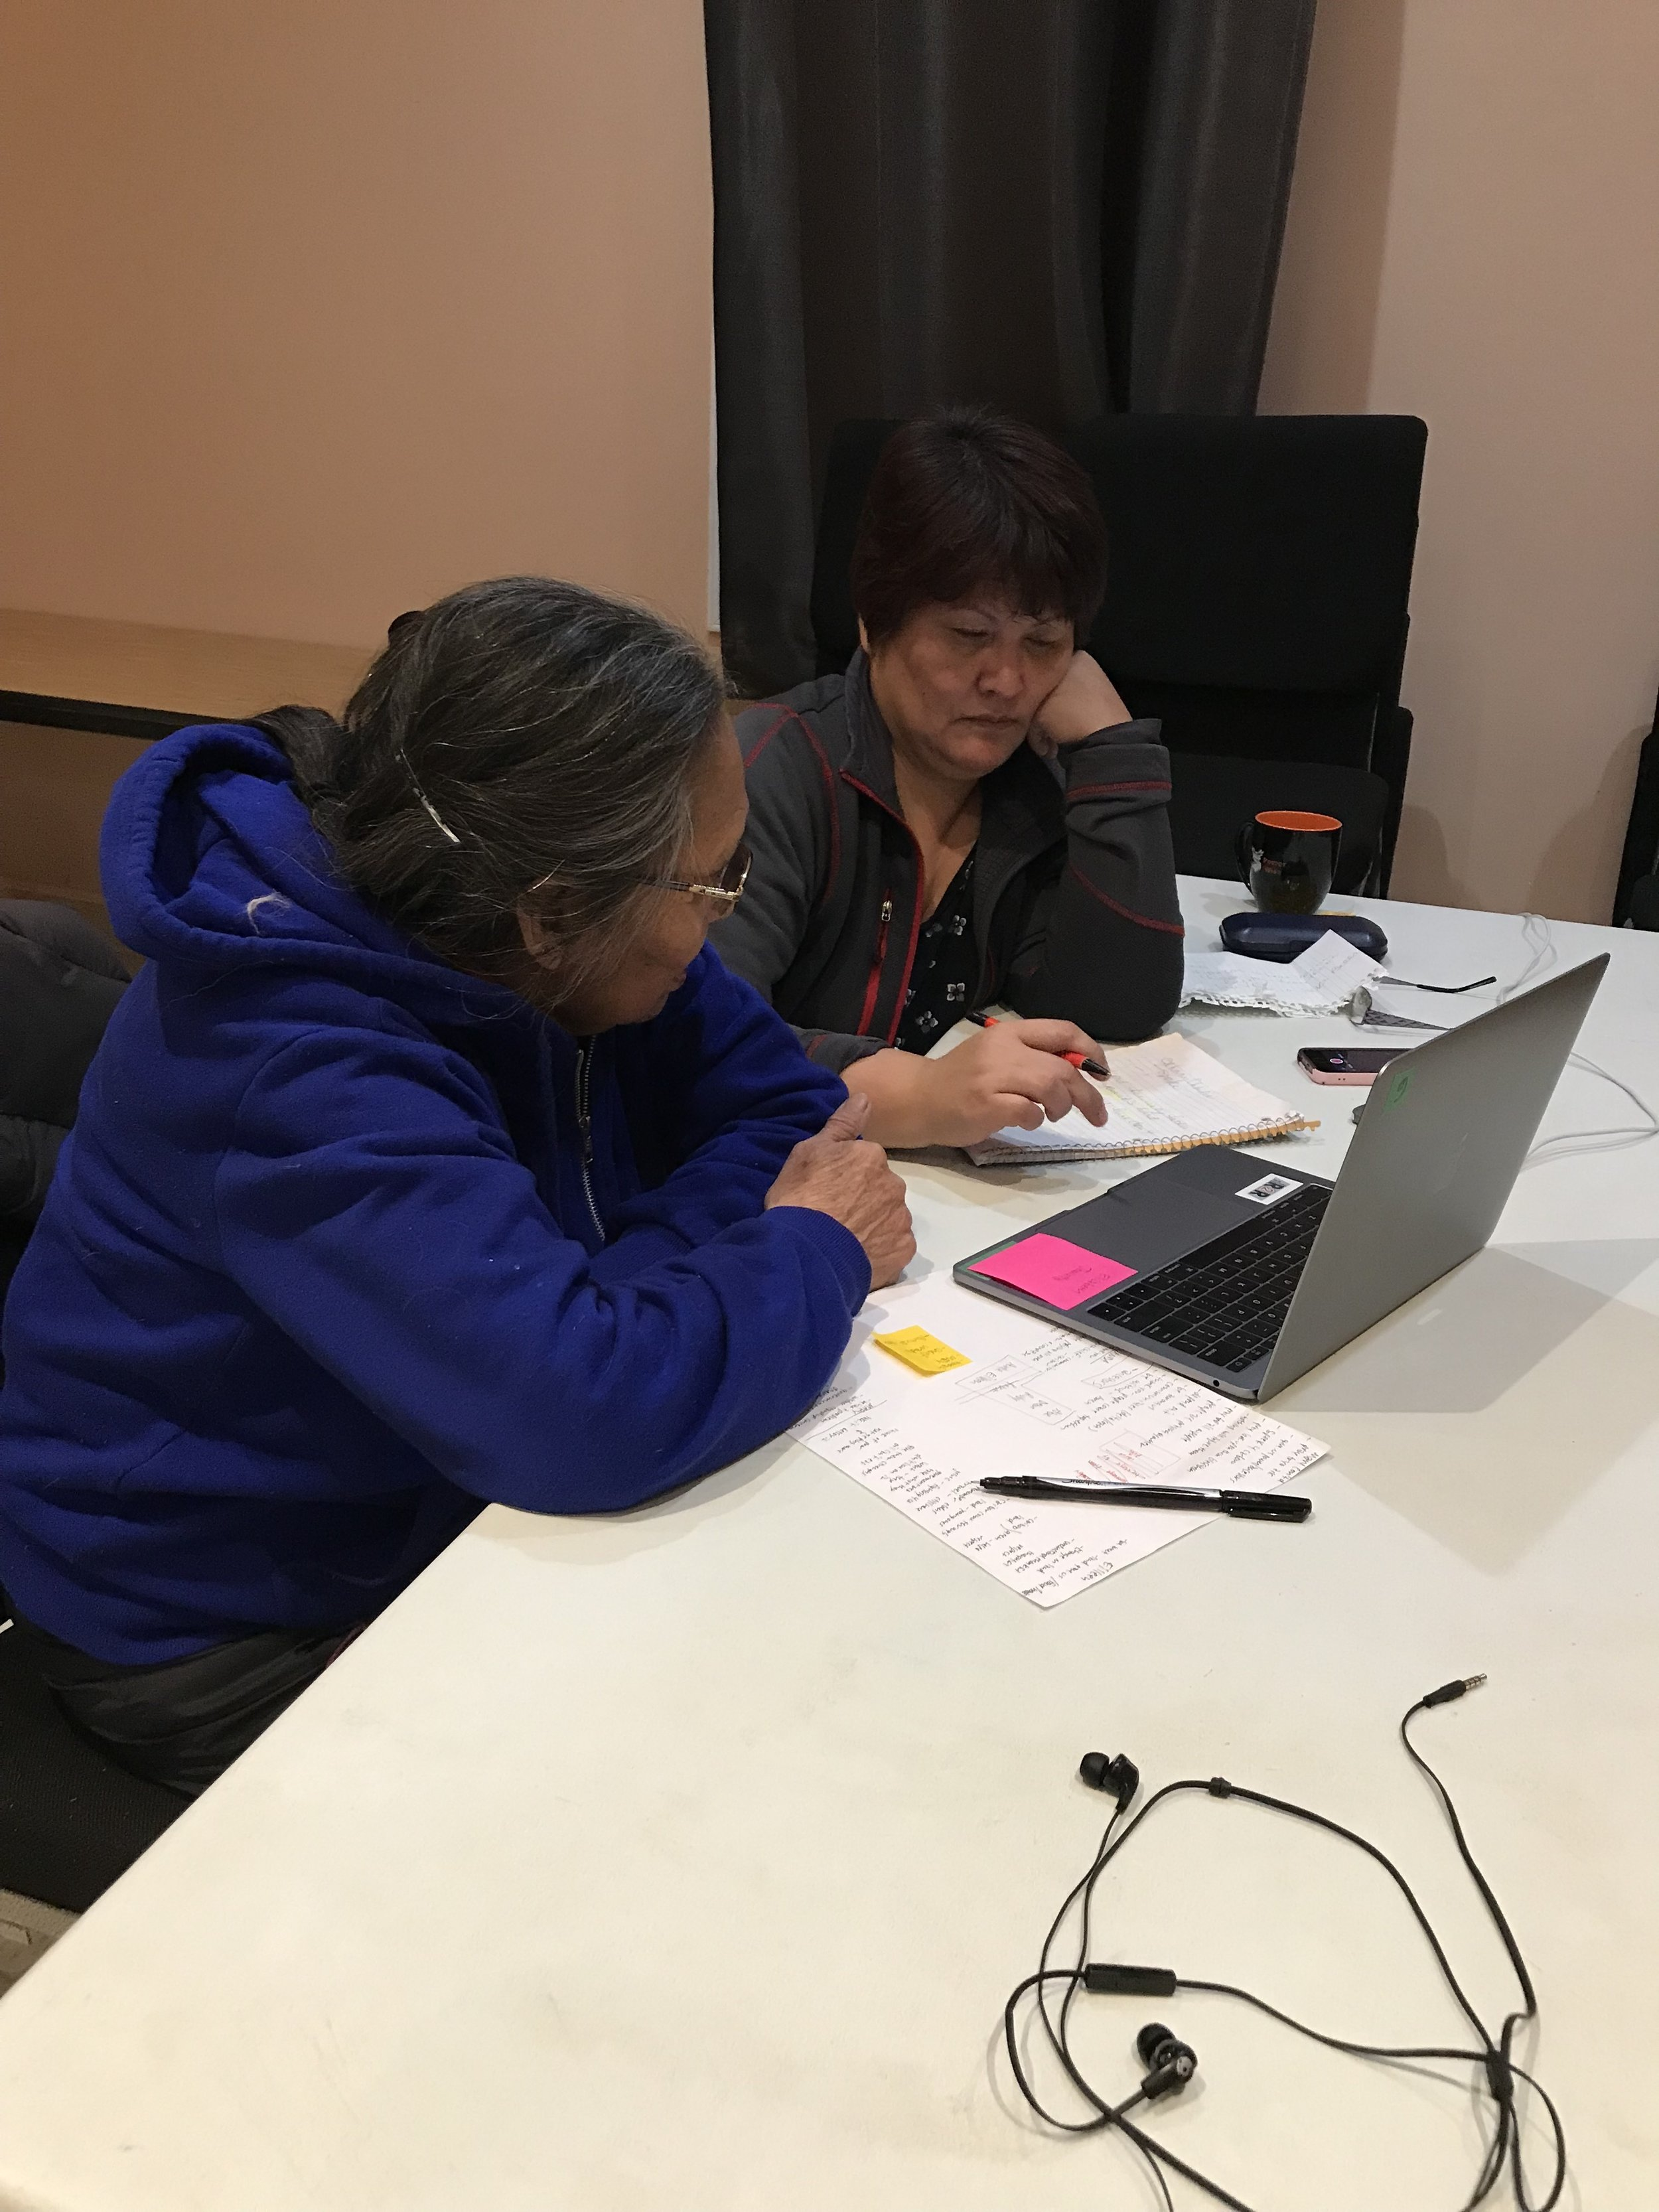 Liz's mom, Mary, helps with Gwich'in translation